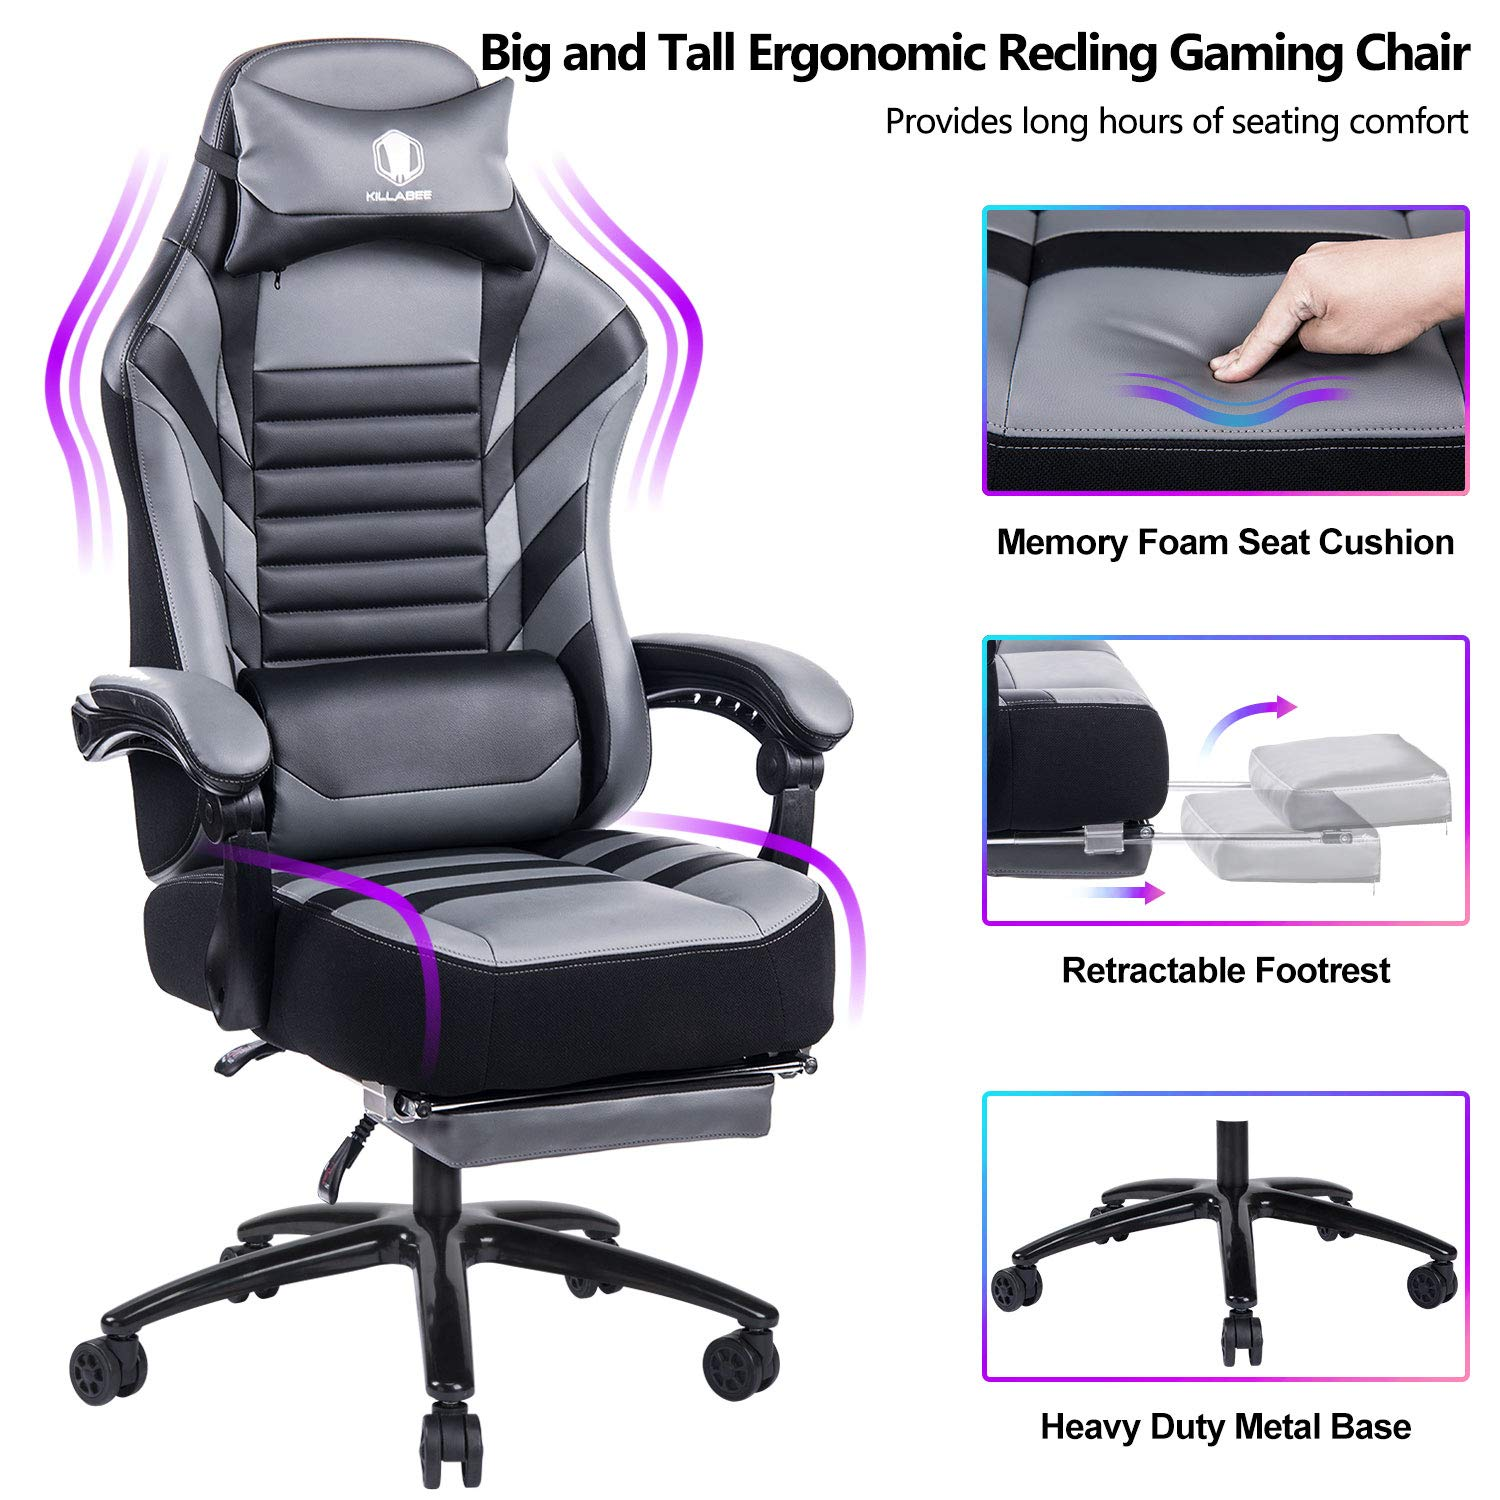 VON RACER Big & Tall 400lb Memory Foam Reclining Gaming Chair Metal Base - Adjustable Back Angle and Retractable Footrest Ergonomic High-Back Leather Racing Executive Computer Desk Office Chair, Gray by VON RACER